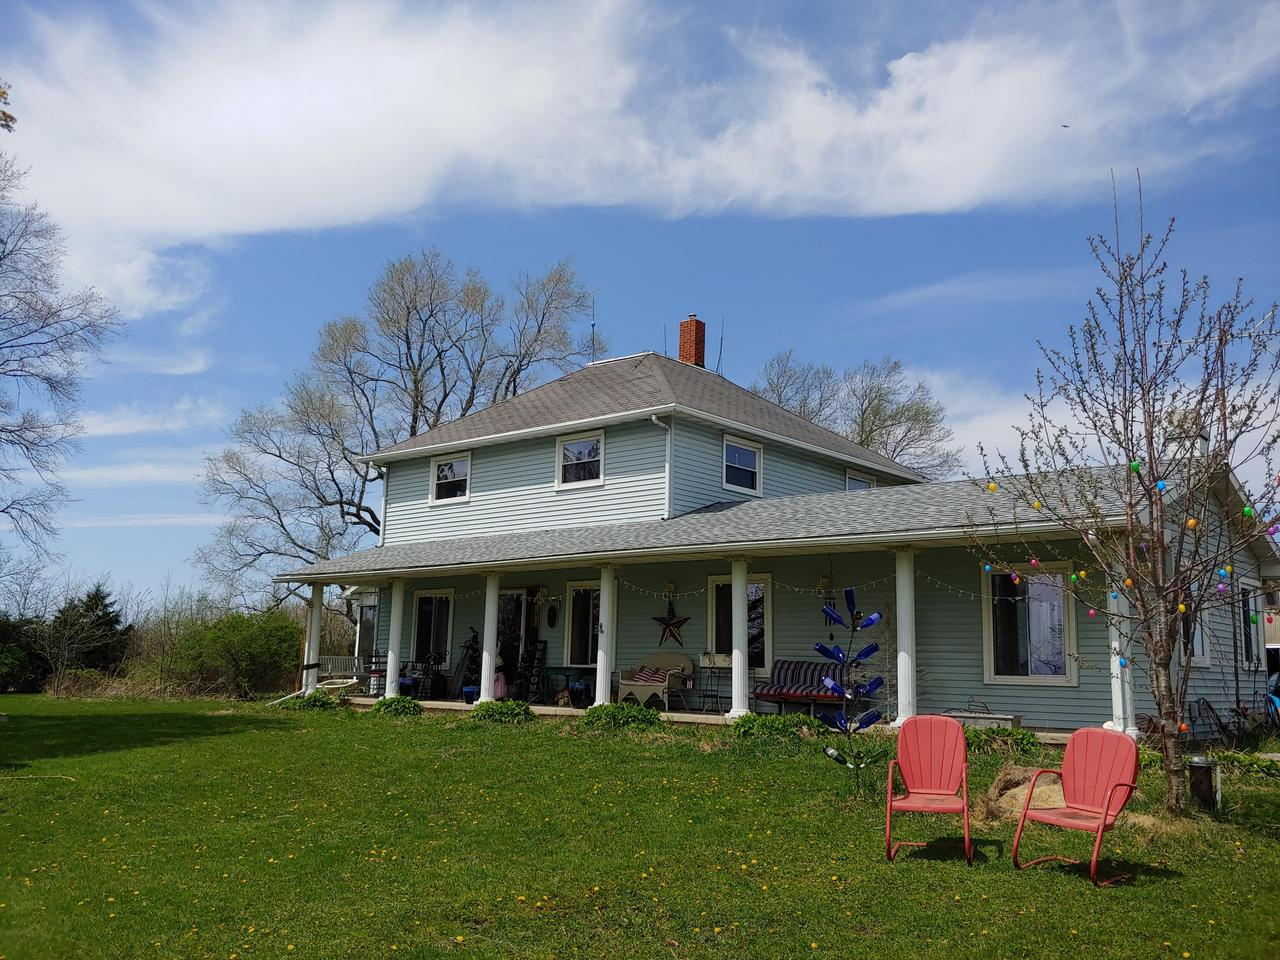 Your own slice of Paradise on 5 acres close to Kettle Moraine, Whitewater Lake and elementary school. Large Country Kitchen with hardwood floors and bay window.  Massive Great Room with nfp.  Formal dining room, Office leading to screen porch.  Large Master Bedroom with bath.  Jacuzzi and shower in full bath.  6 stall horse barn, 4 car garage, Large barn with hay storage.  As per A-1zoning can have numerous animals